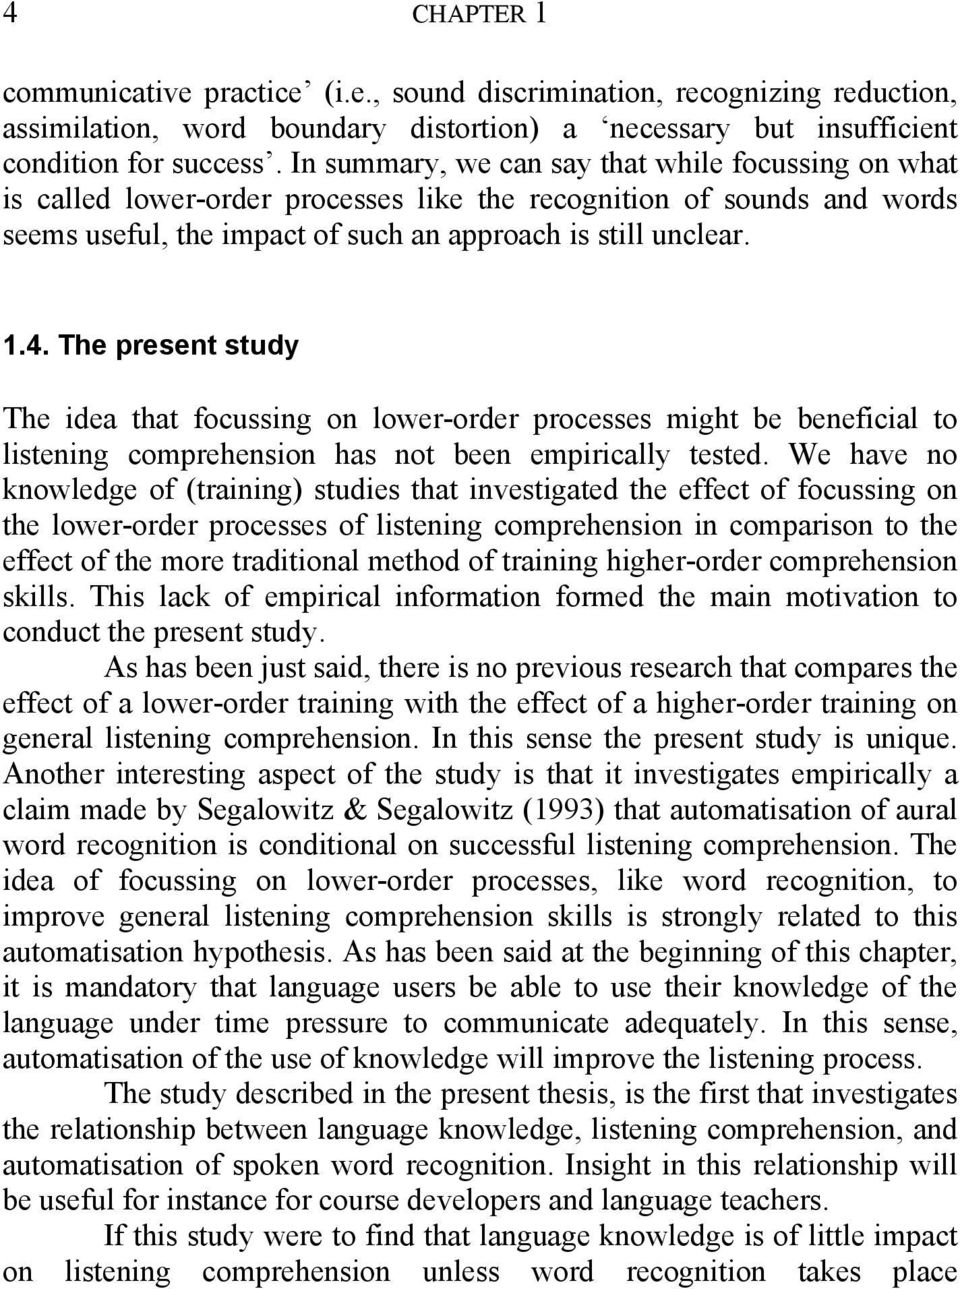 The present study The idea that focussing on lower-order processes might be beneficial to listening comprehension has not been empirically tested.